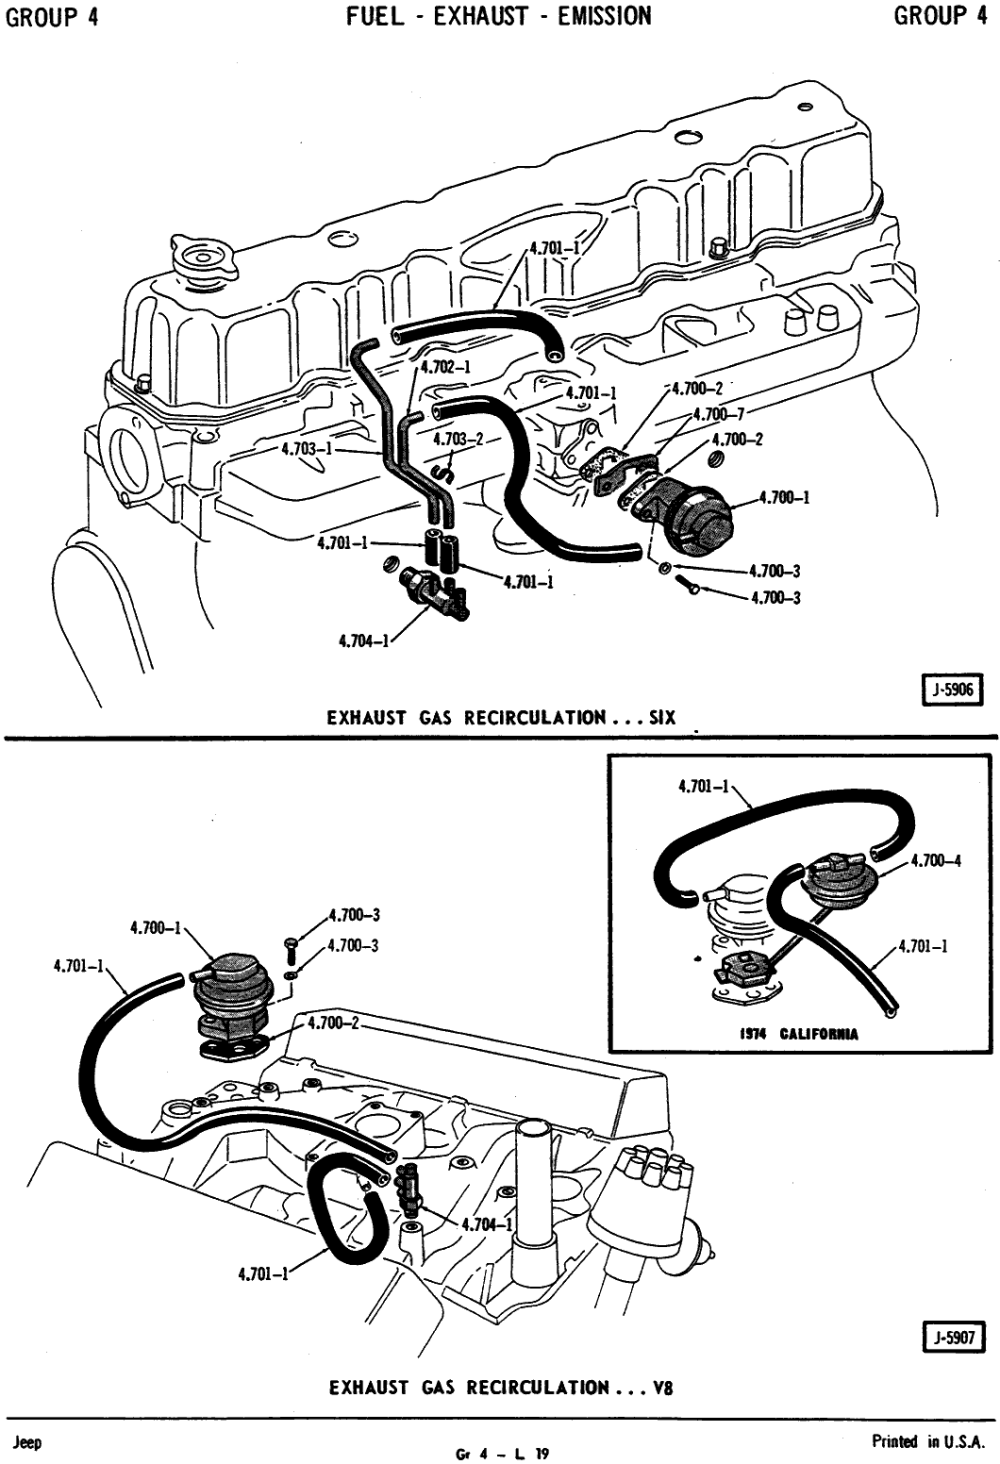 medium resolution of jeep grand cherokee vacuum line diagram further 1985 jeep cj7 1985 jeep cherokee vacuum diagram